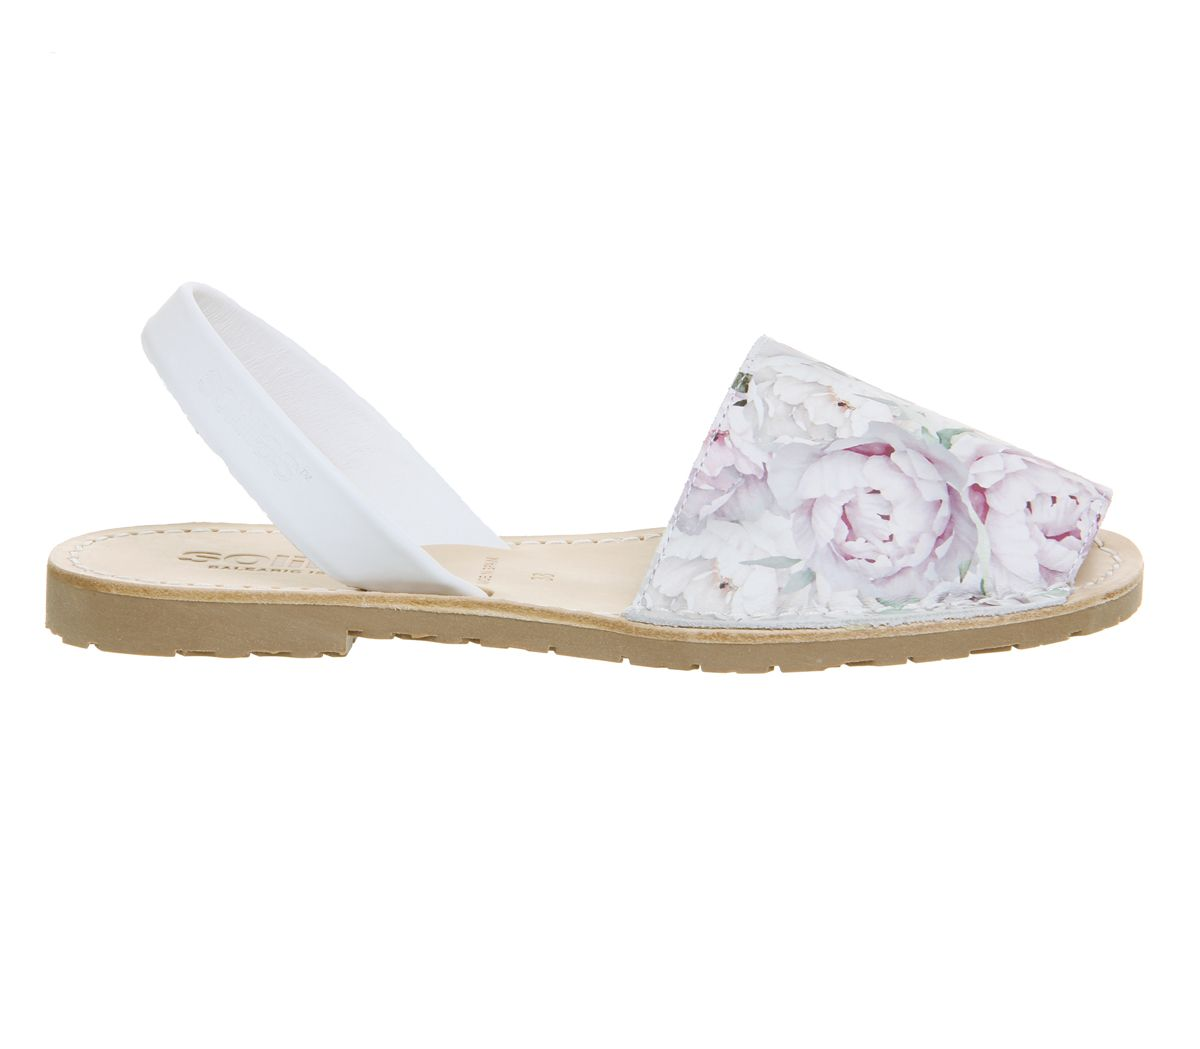 Womens-Solillas-Solillas-Sandals-Floral-Print-Sandals thumbnail 6